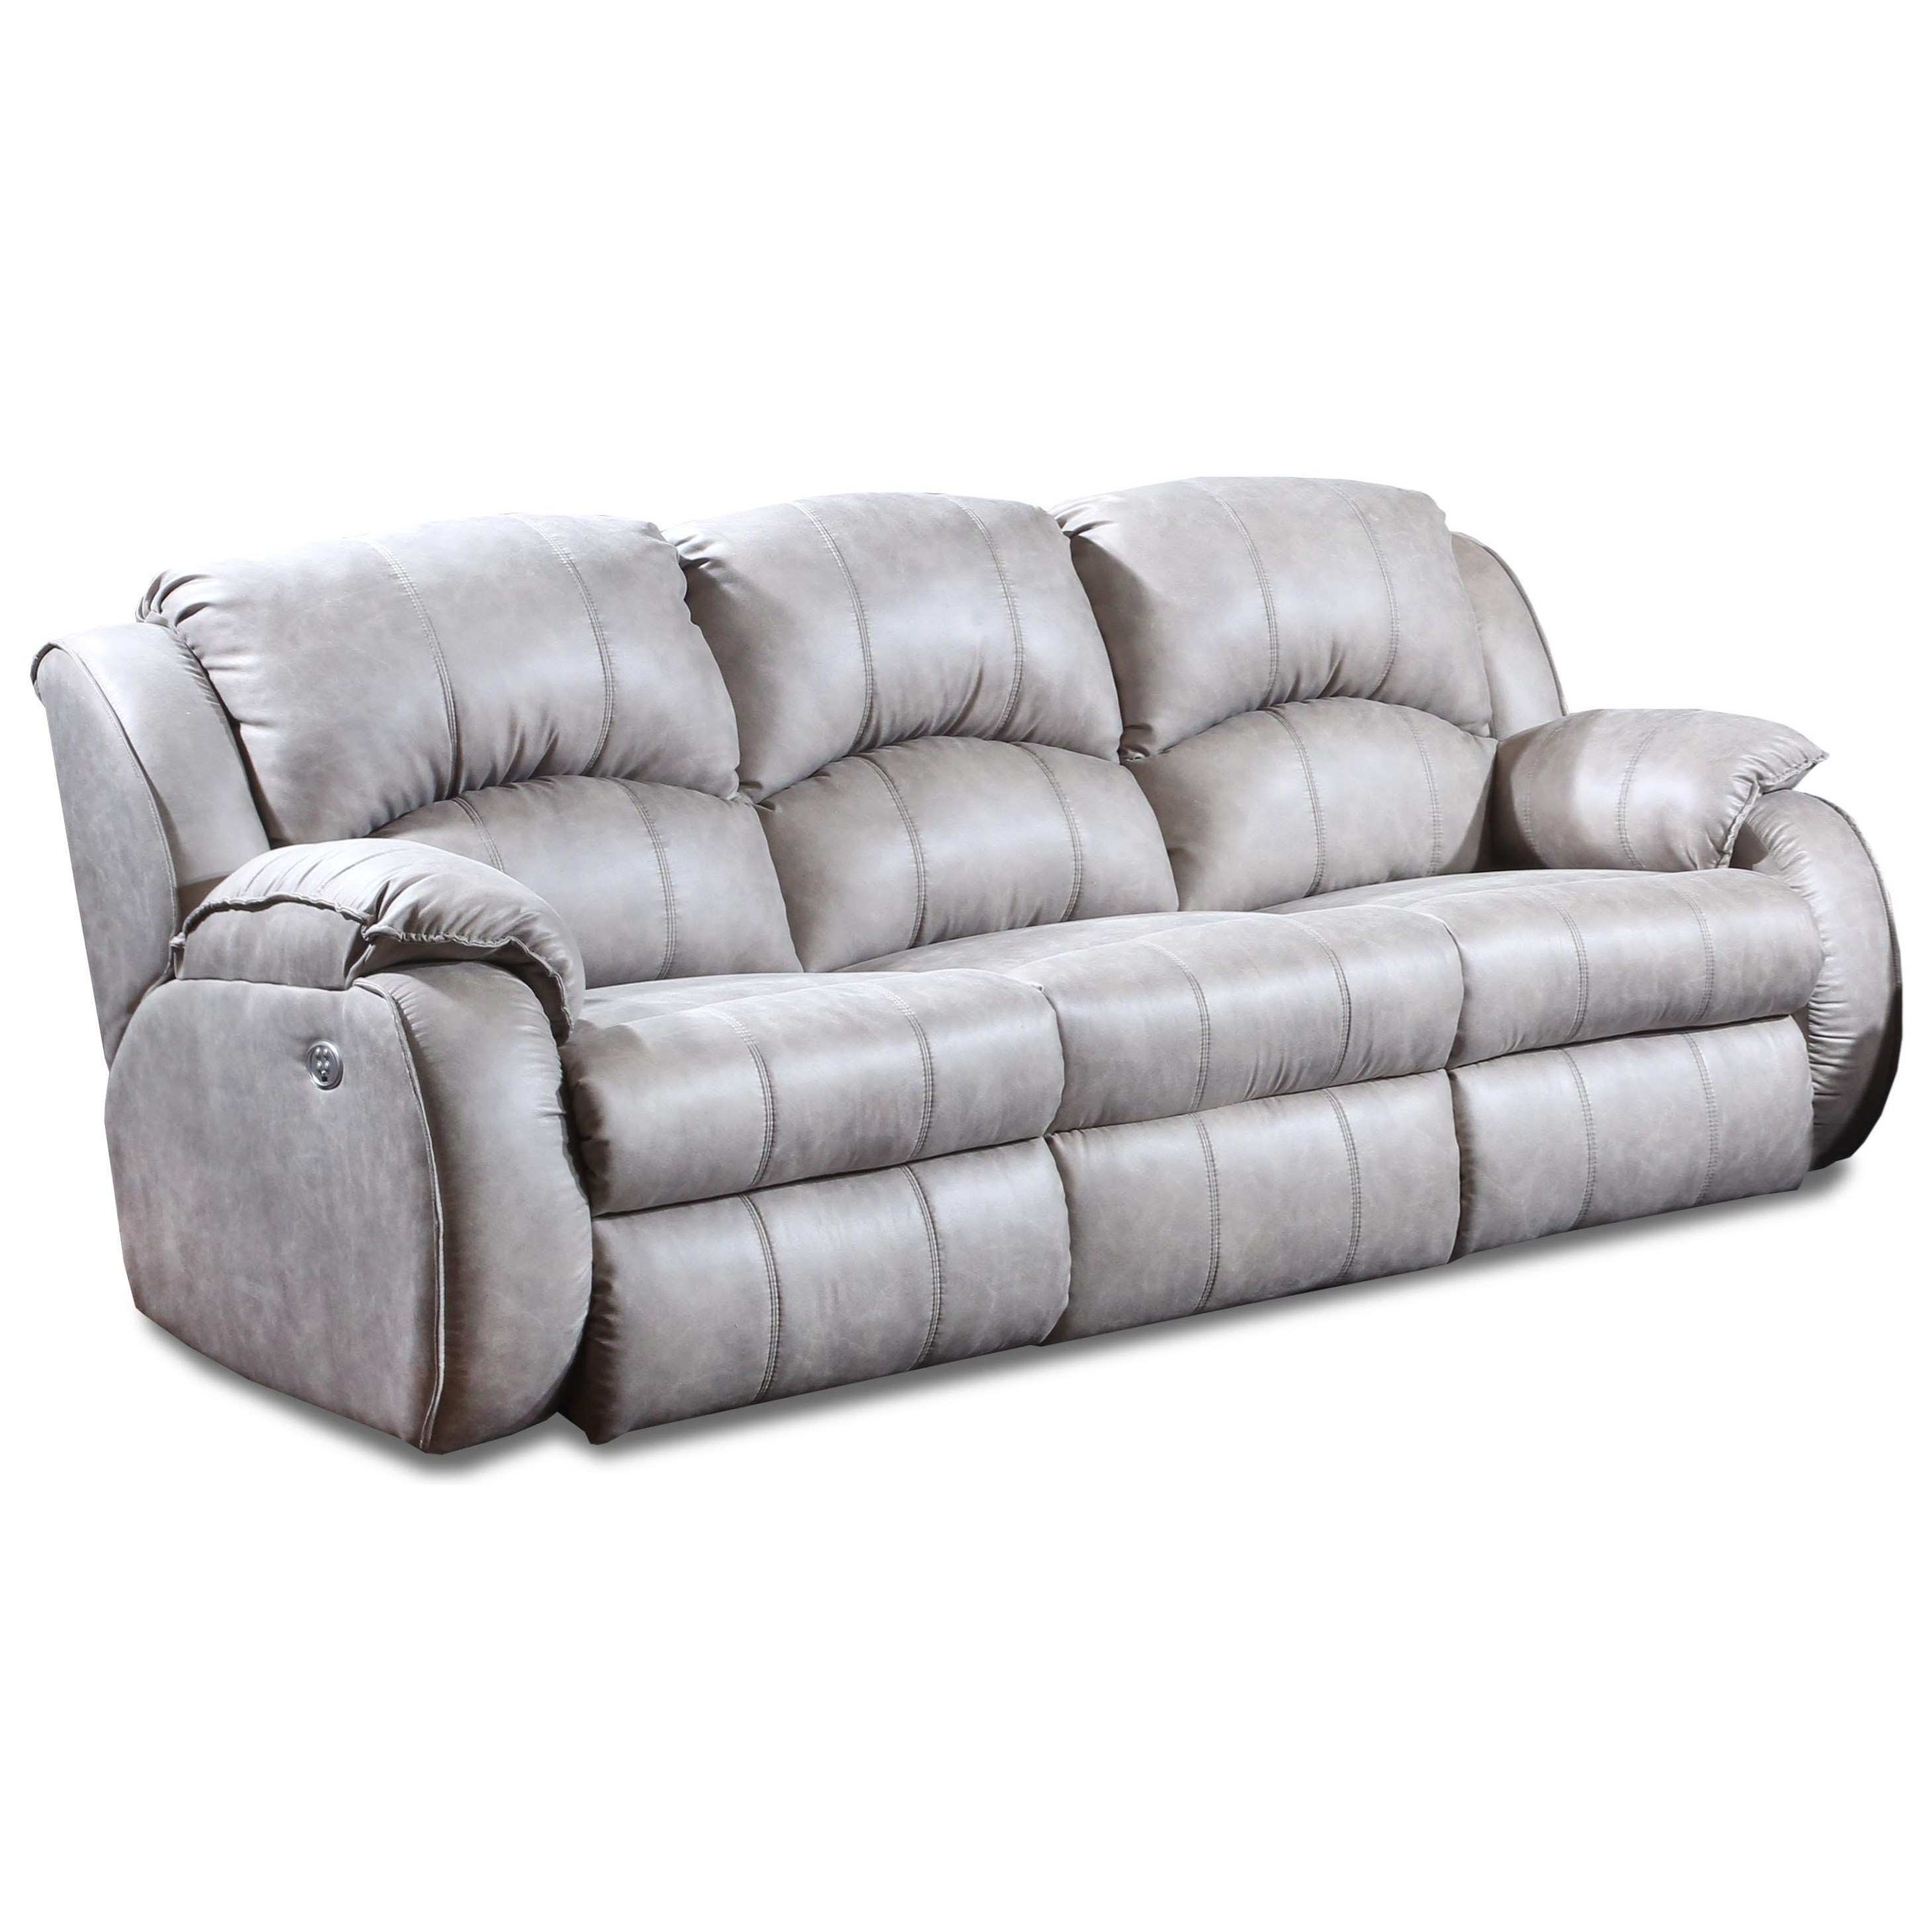 Cagney Power Headrest Reclining Sofa by Southern Motion at Suburban Furniture